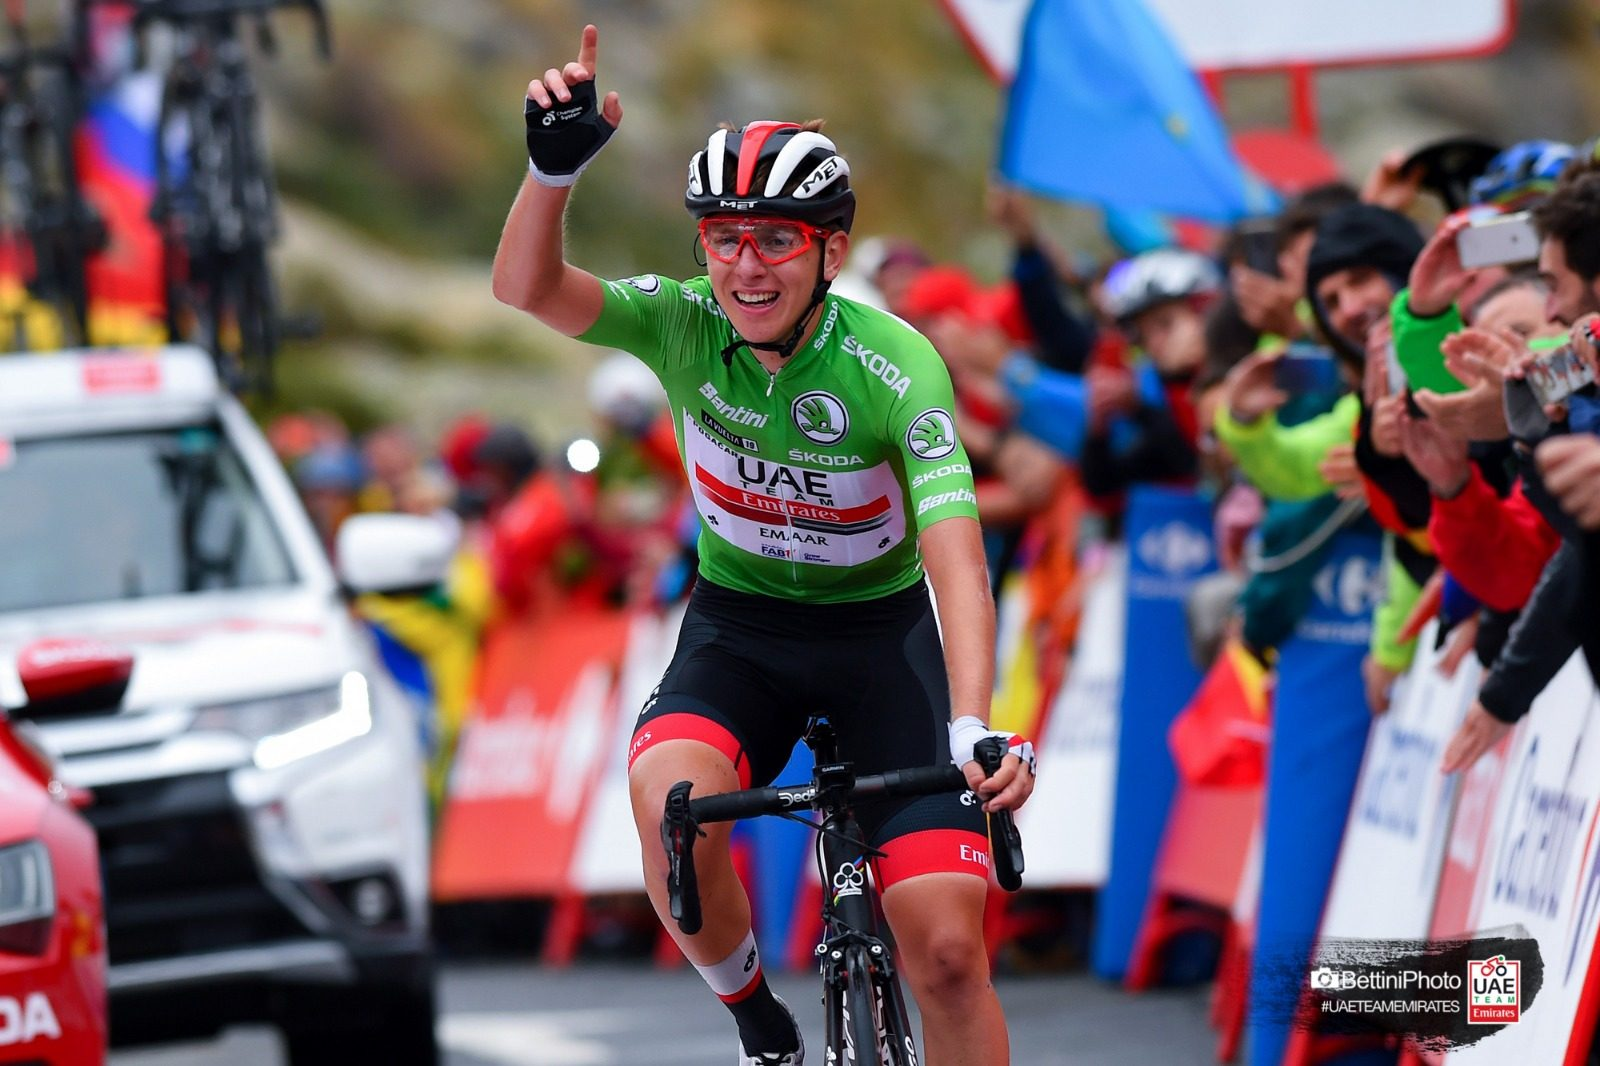 Tadej Pogacar Wins His Third Stage Of The Vuelta A Espana And Moves Up To Third Overall The Bike Comes First